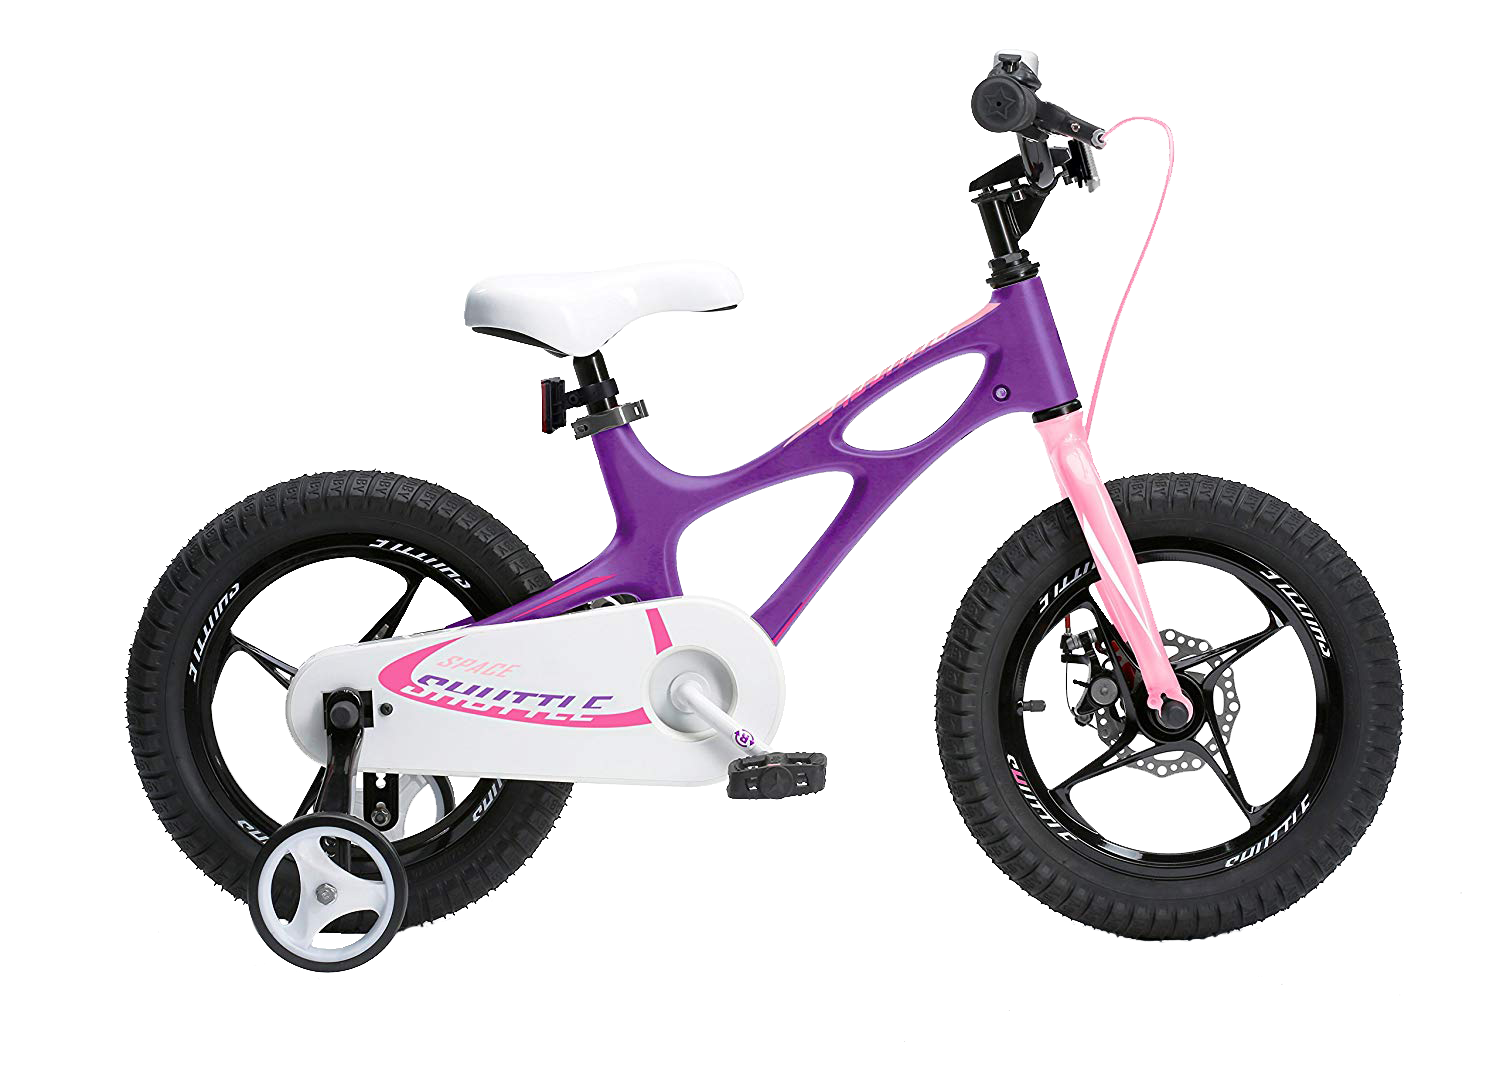 Bicicleta Infantil Royal Baby Space Shuttle Rodado 16